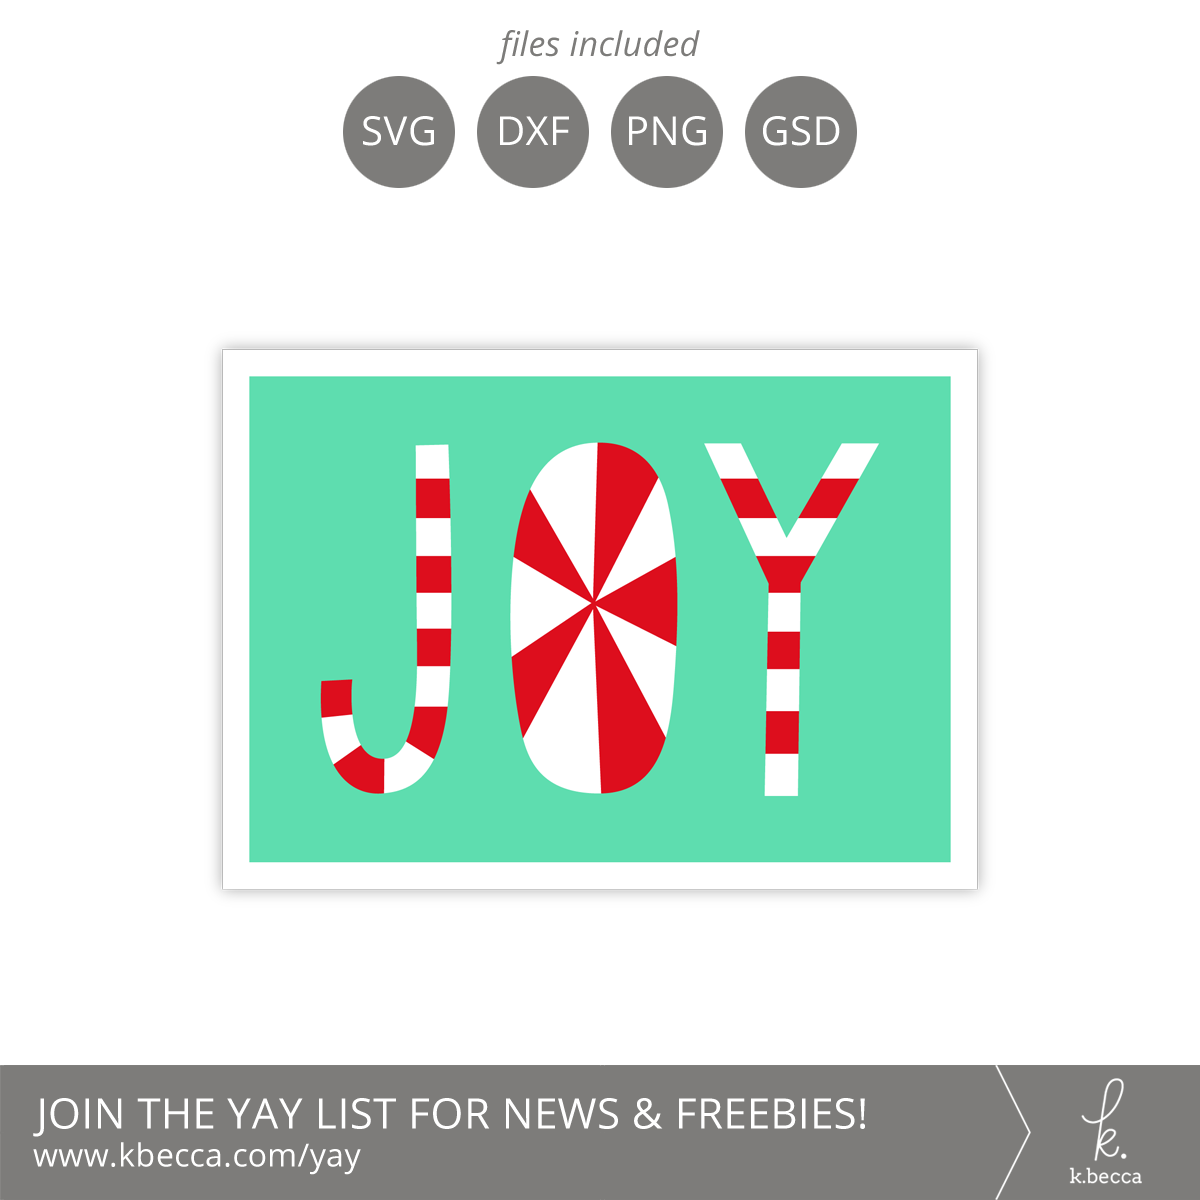 Peppermint Joy Card SVG Files - A2 & A7 Sizes Included #svgfiles #silhouettecameo #cutfiles